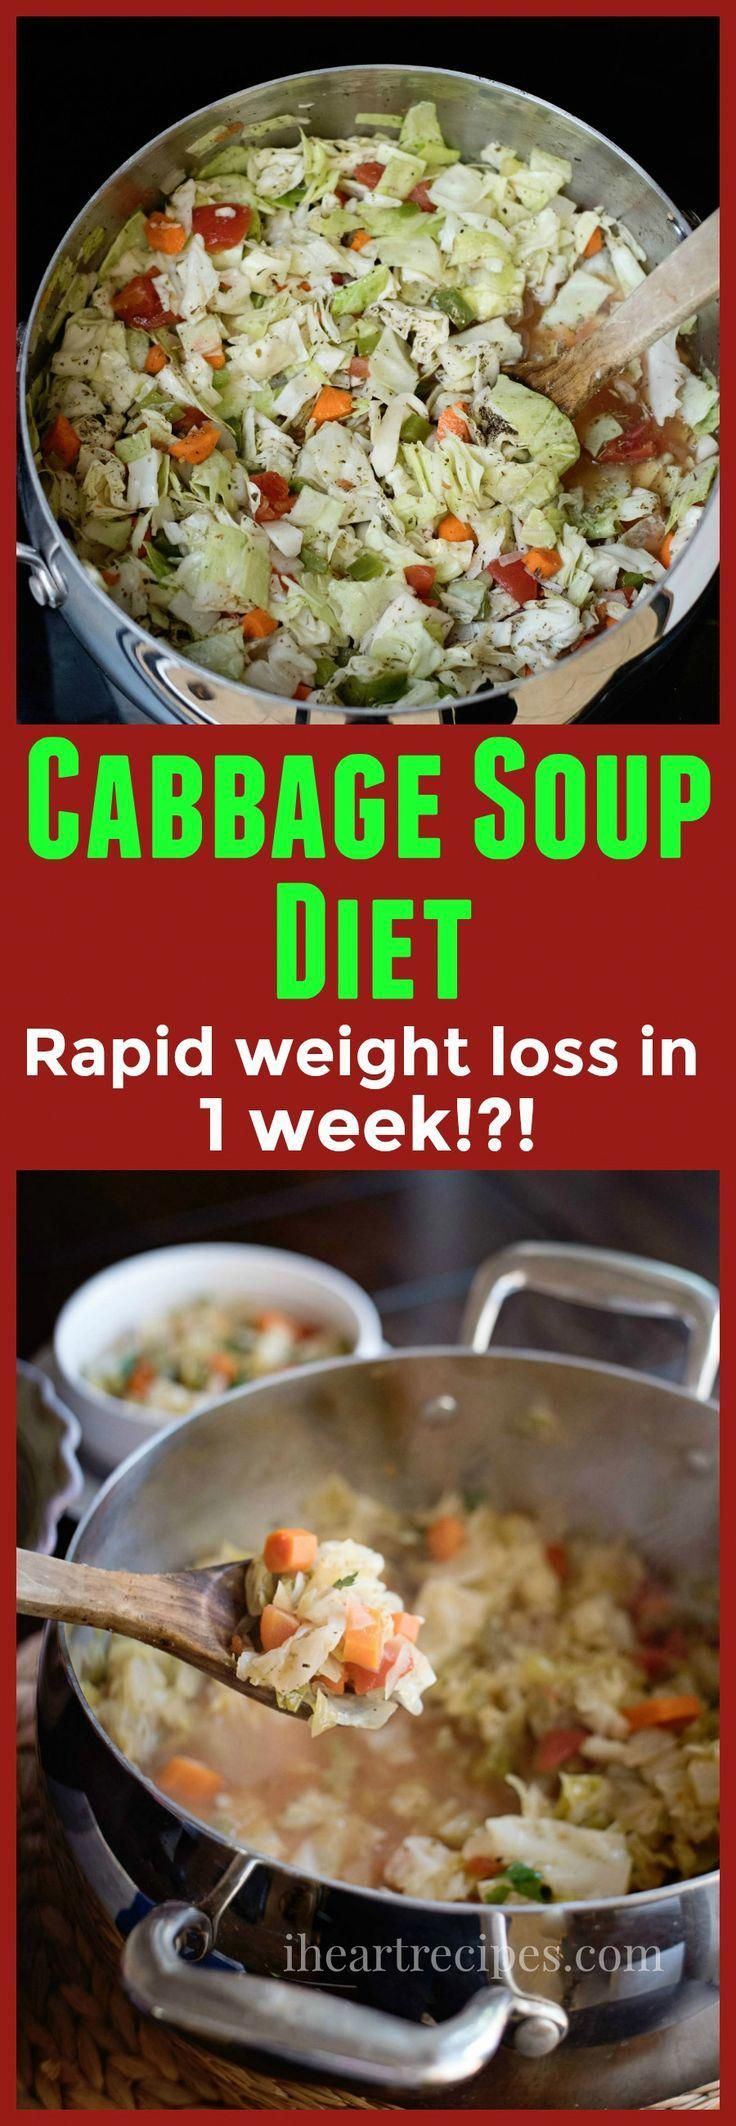 Original cabbage soup diet recipe for weight loss. Does that cabbage soup diet work?…